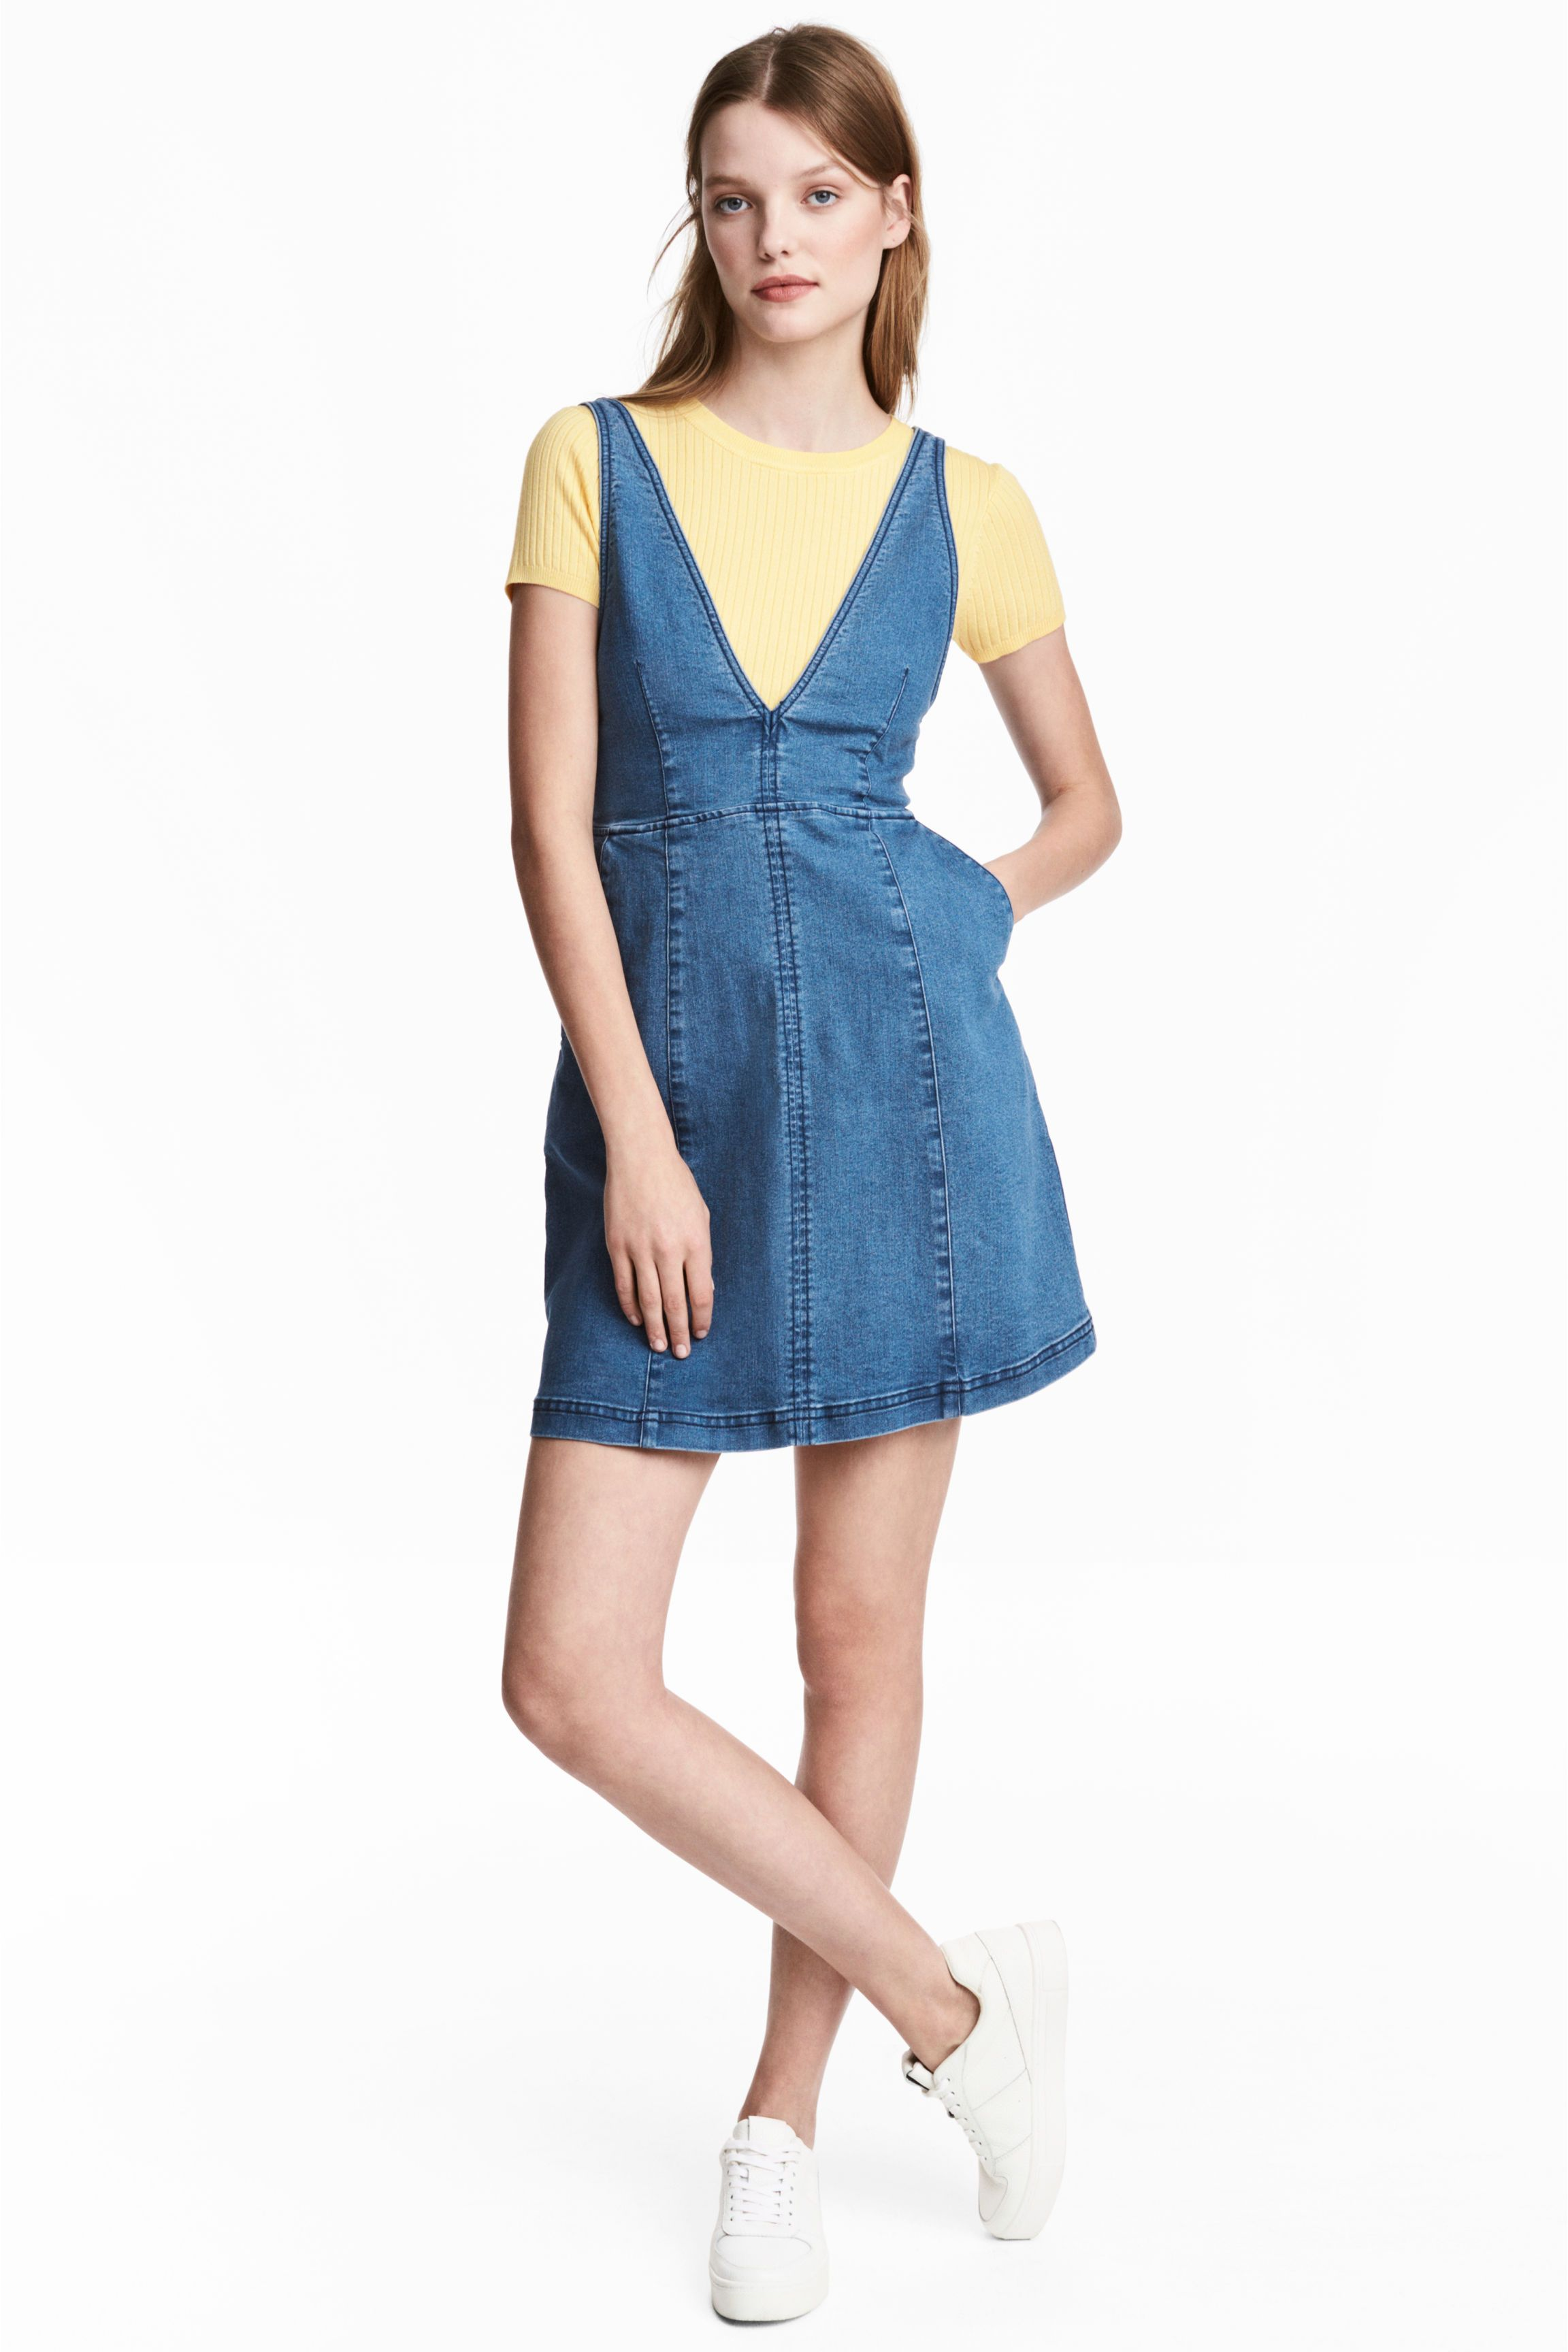 H&M Denim Pinafore Dress | LB Dresses SS18 | Pinterest | Denim ...